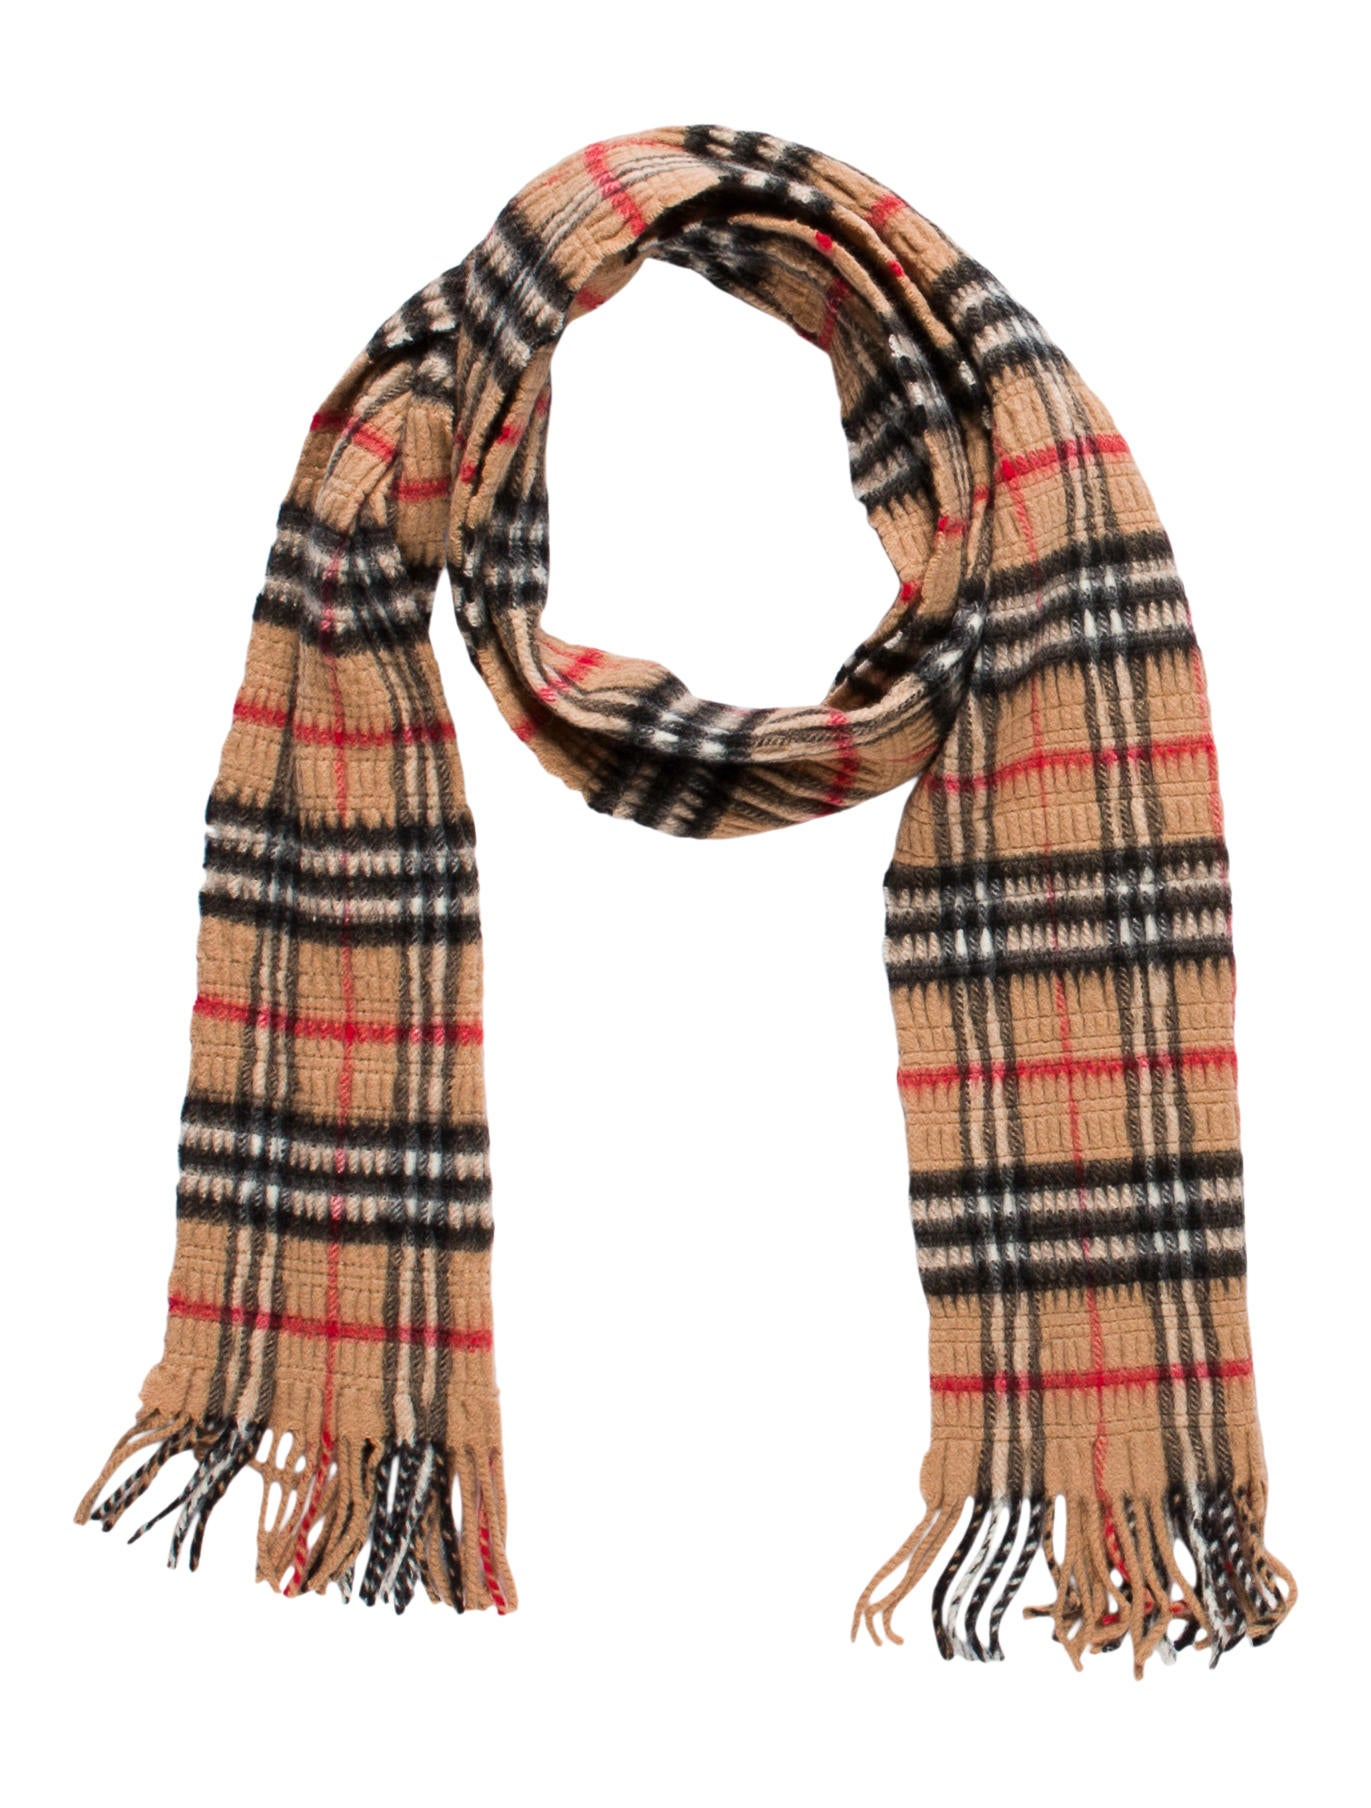 Shop women's scarves, wraps & shawls at Saks Fifth Avenue. Enjoy free shipping on all orders. Jewelry & Accessories. Accessories. Jewelry & Accessories Accessories Scarves. Scarves. Filter By. Designer Price Color CLEAR SELECTION(S) Choose your filters before clicking apply. # D.